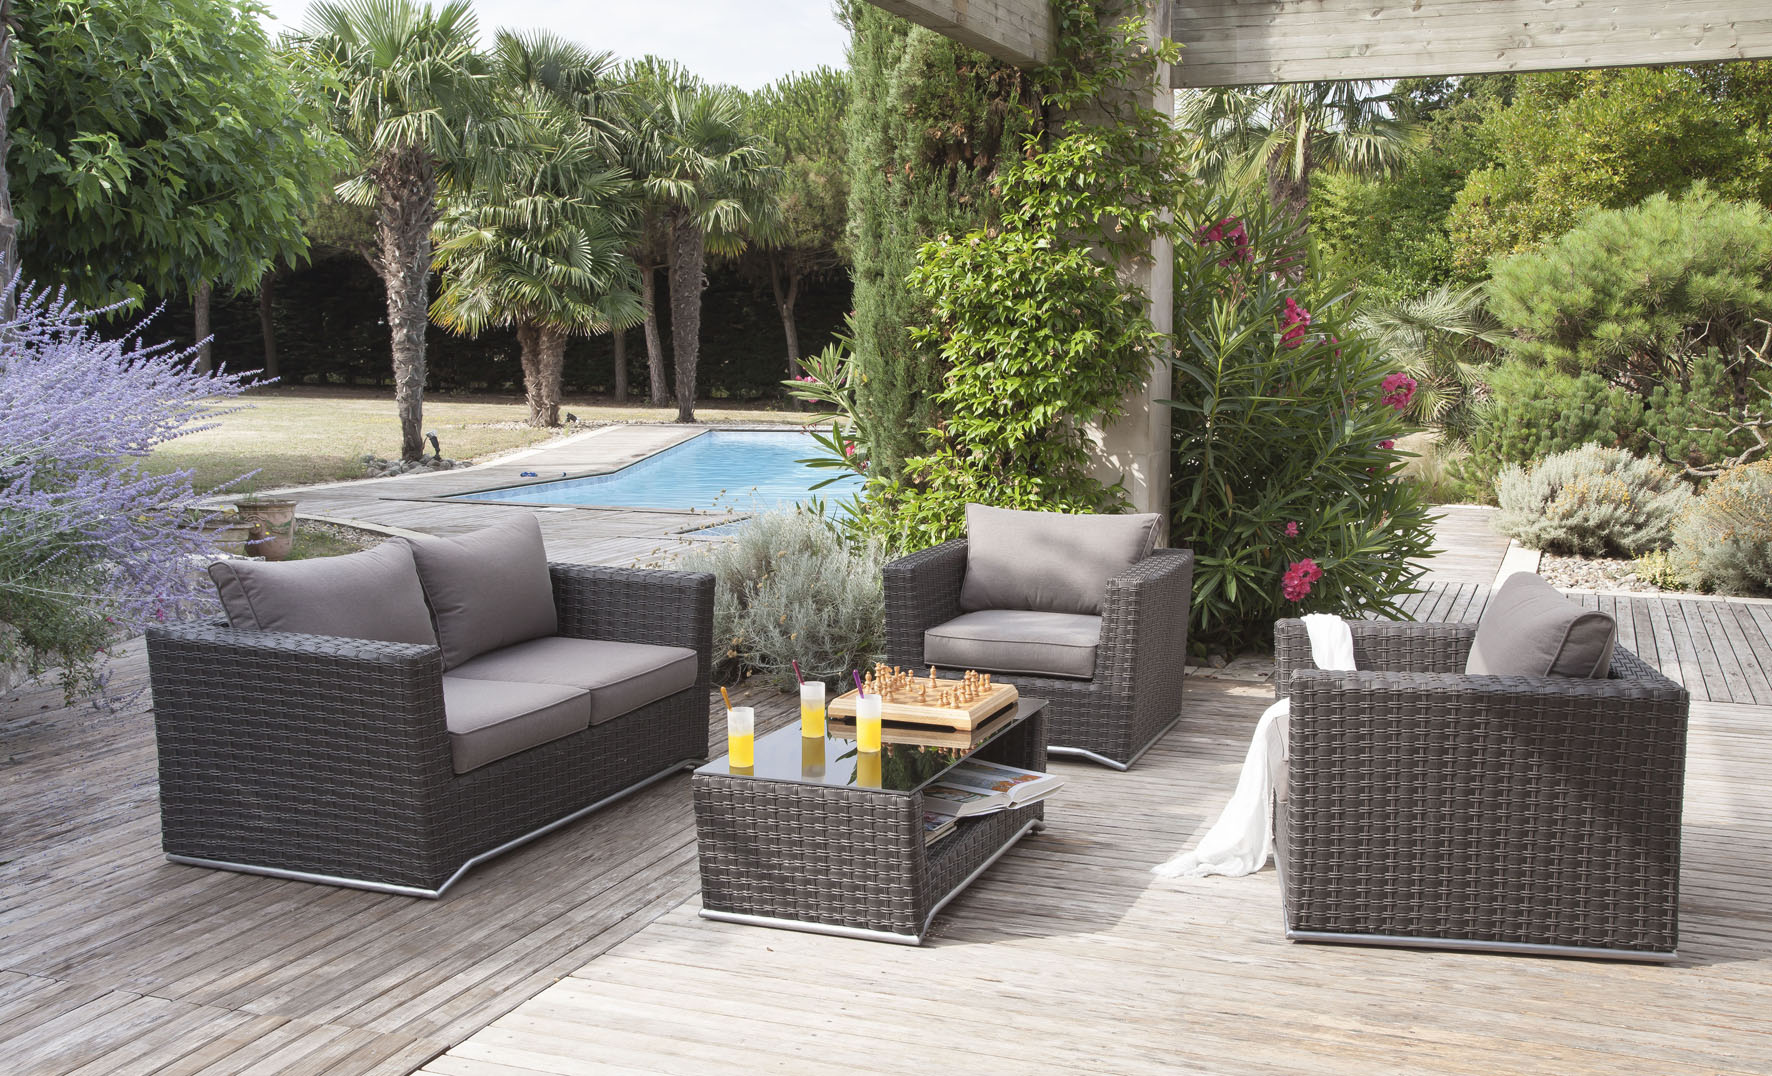 outdoor la nouvelle collection proloisirs jacky la. Black Bedroom Furniture Sets. Home Design Ideas